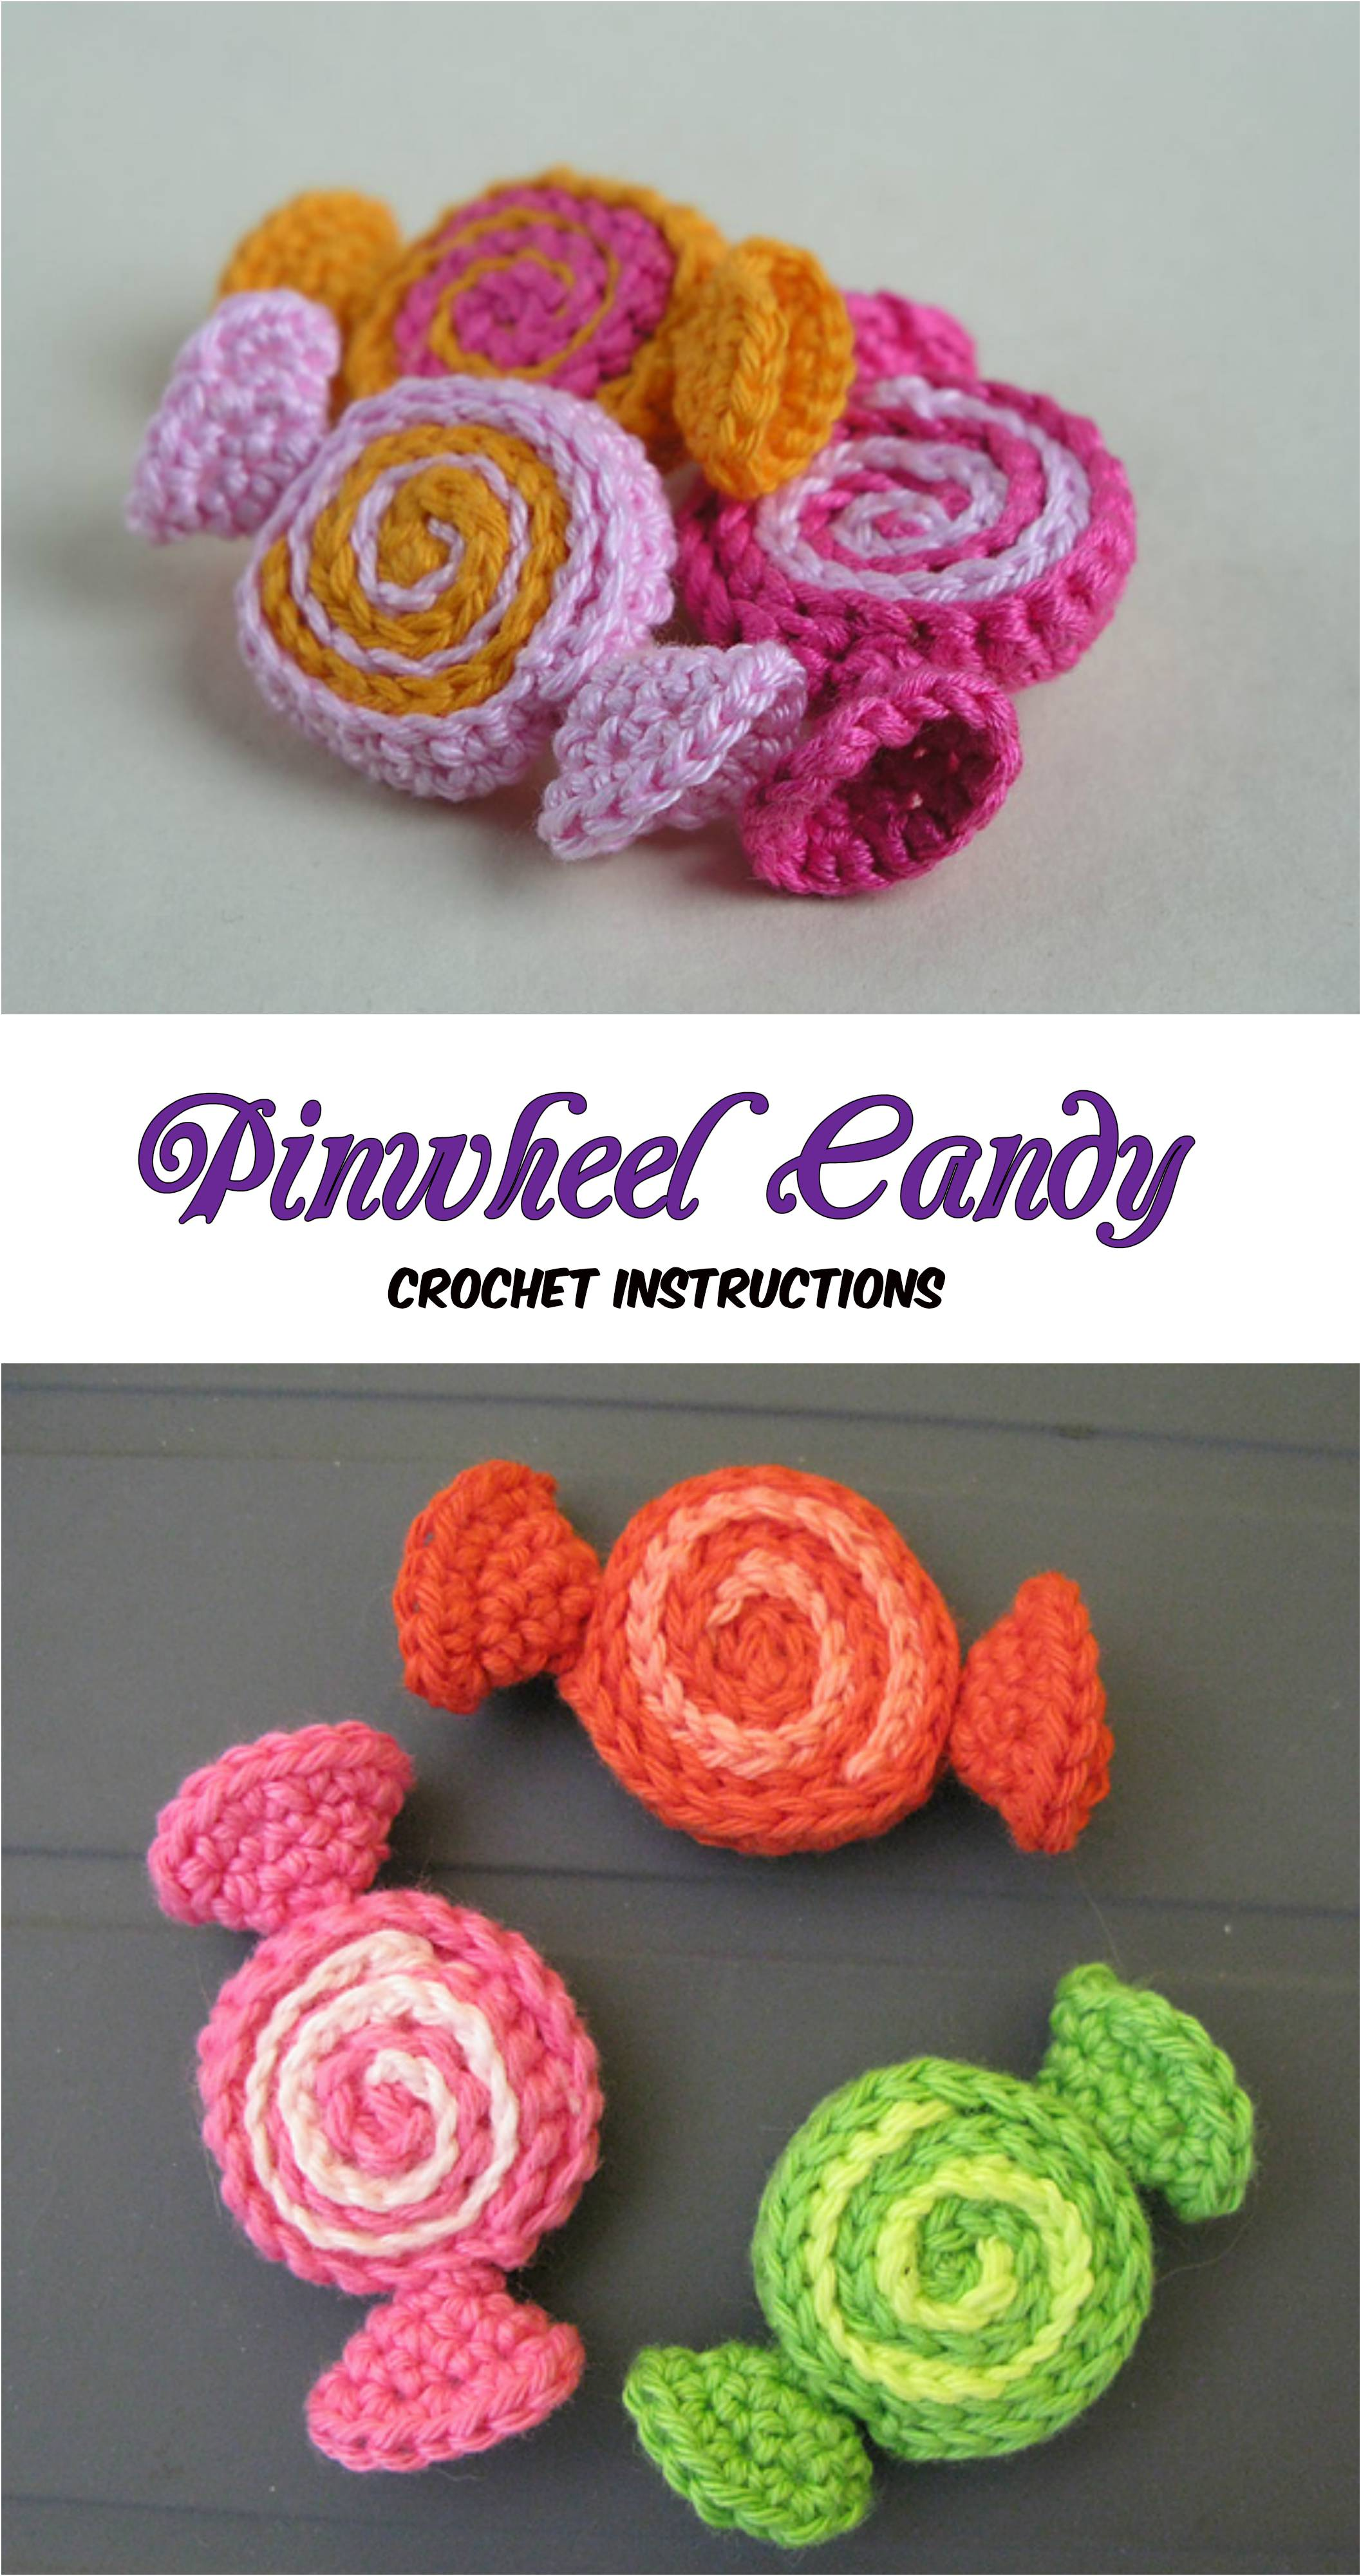 Crochet Pinwheel Candy Pretty Ideas